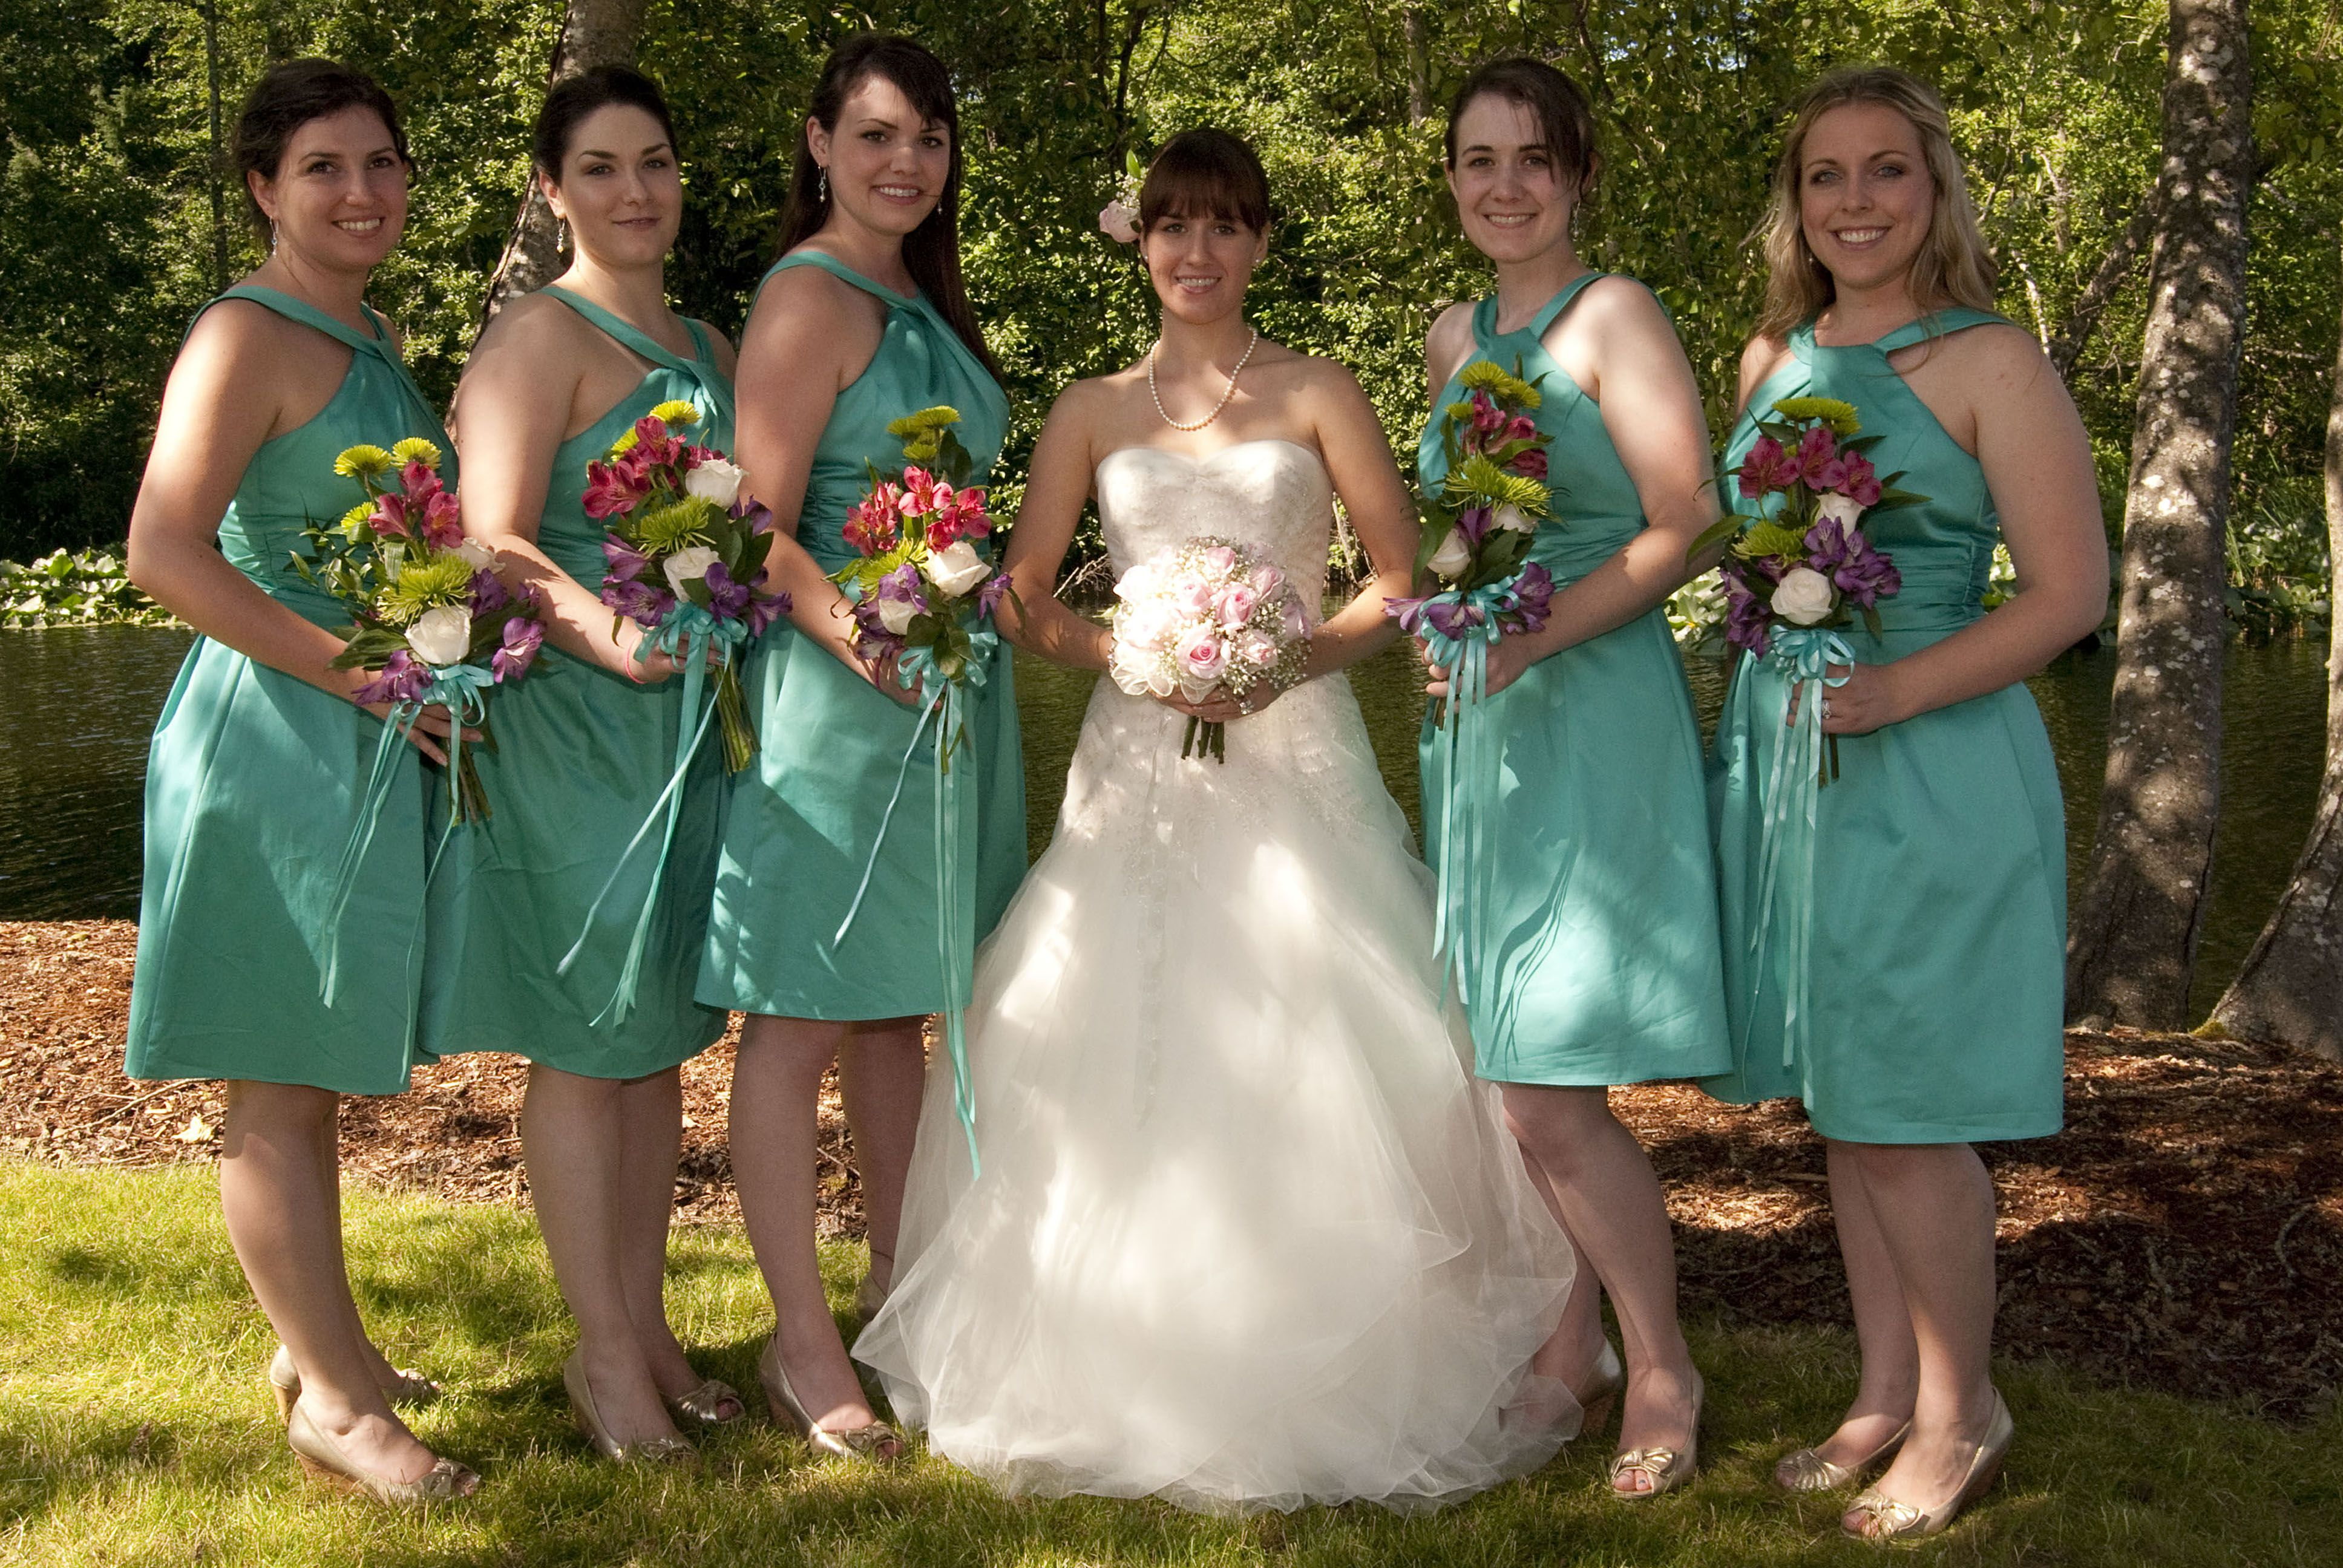 fall bridal party pictures%0A teal wedding the flowers have nice coordinating colors that have more of  a